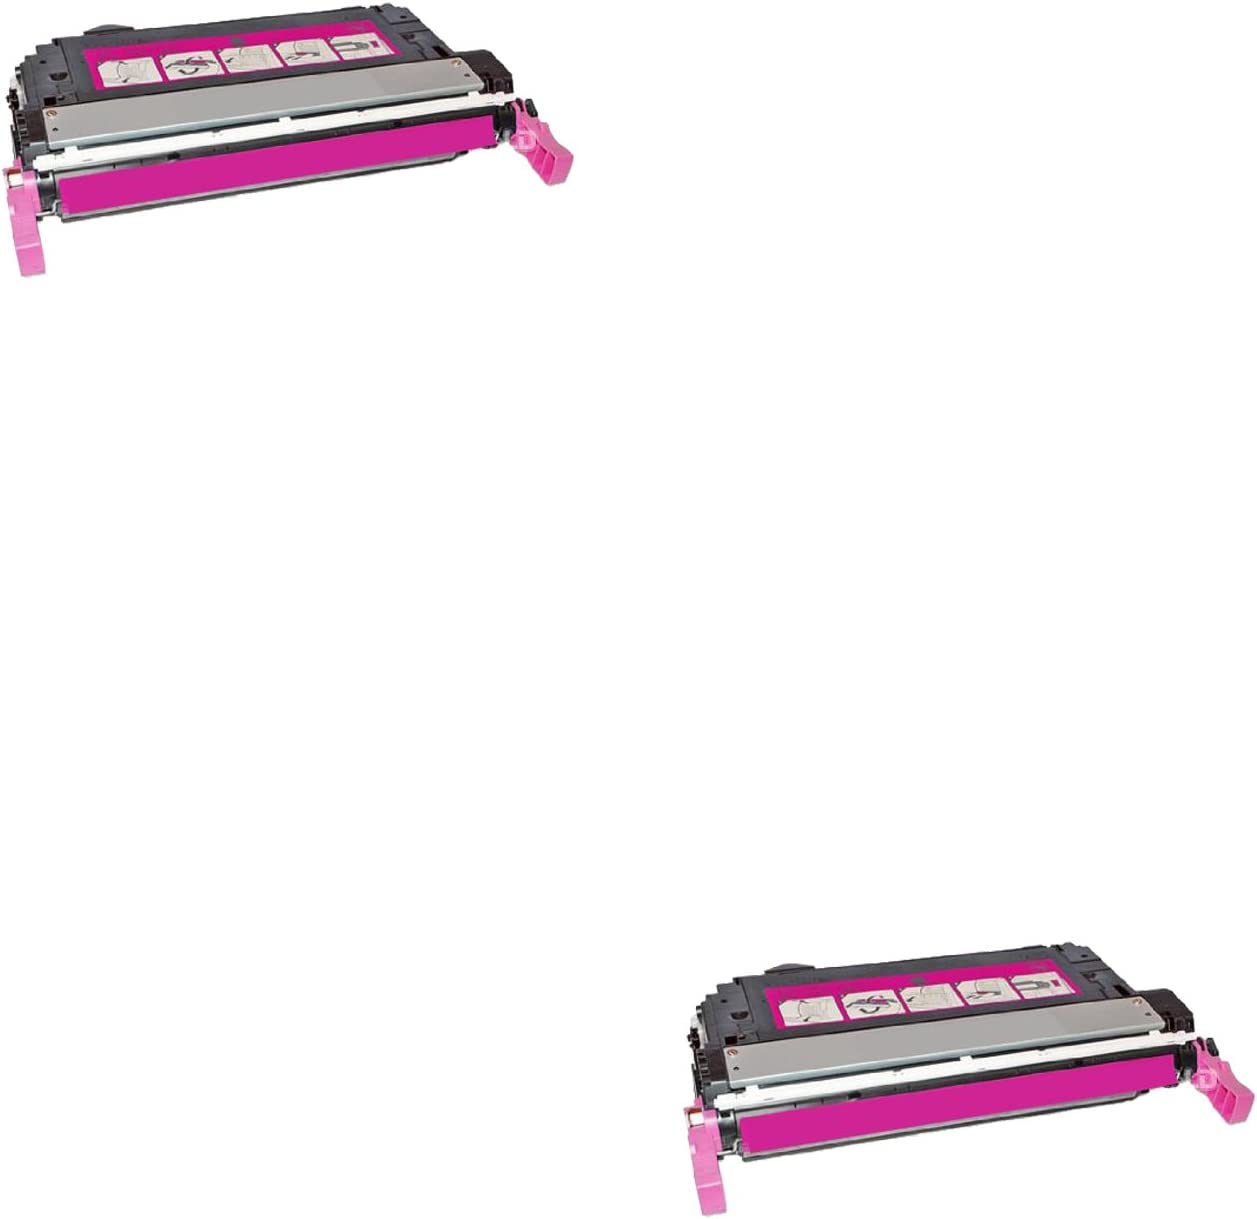 4730x NYT Compatible High Yield Toner Cartridge Replacement for Q6463A for HP Color Laserjet 4730 CM4730fsk Magenta, 3-Pack